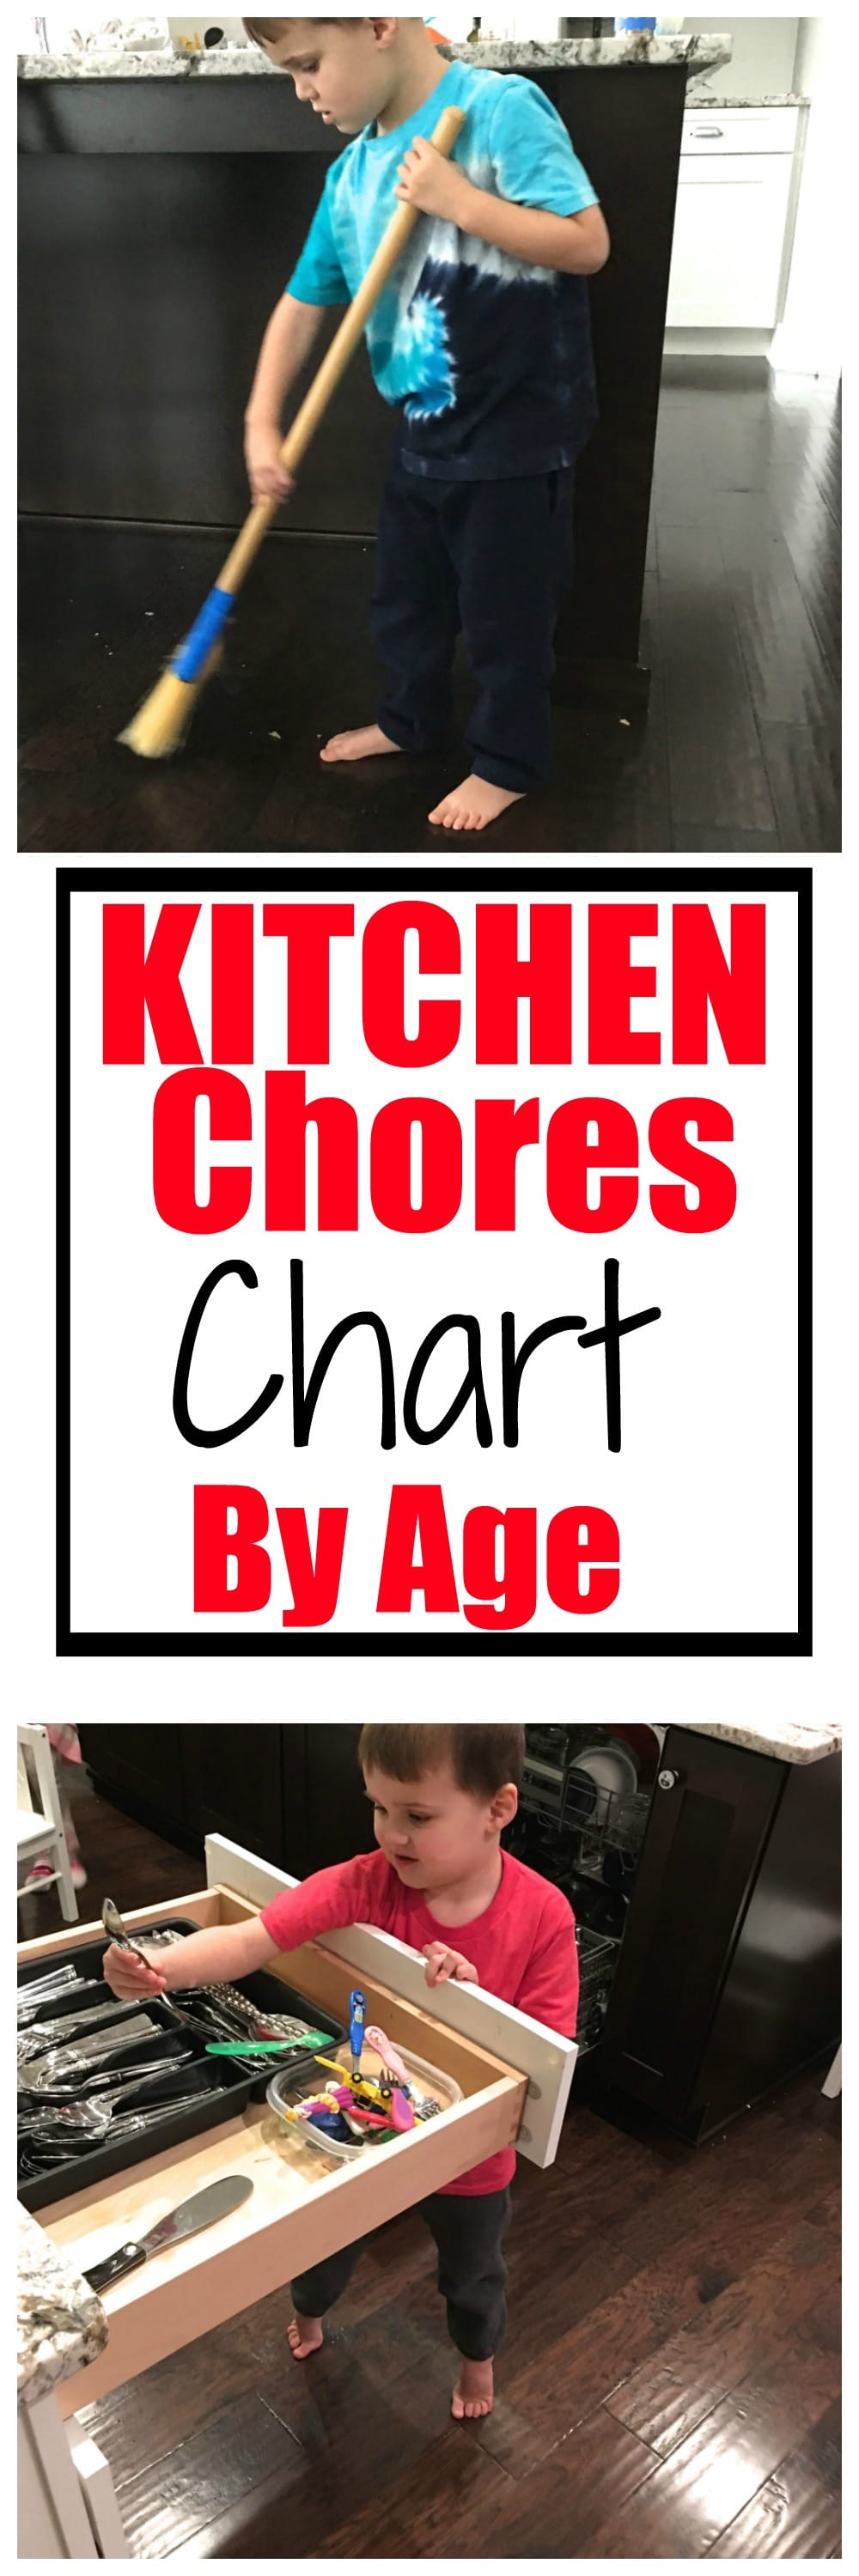 What should your kids be helping you with in the kitchen? Use our Kitchen Chores Chart by Age to find out!